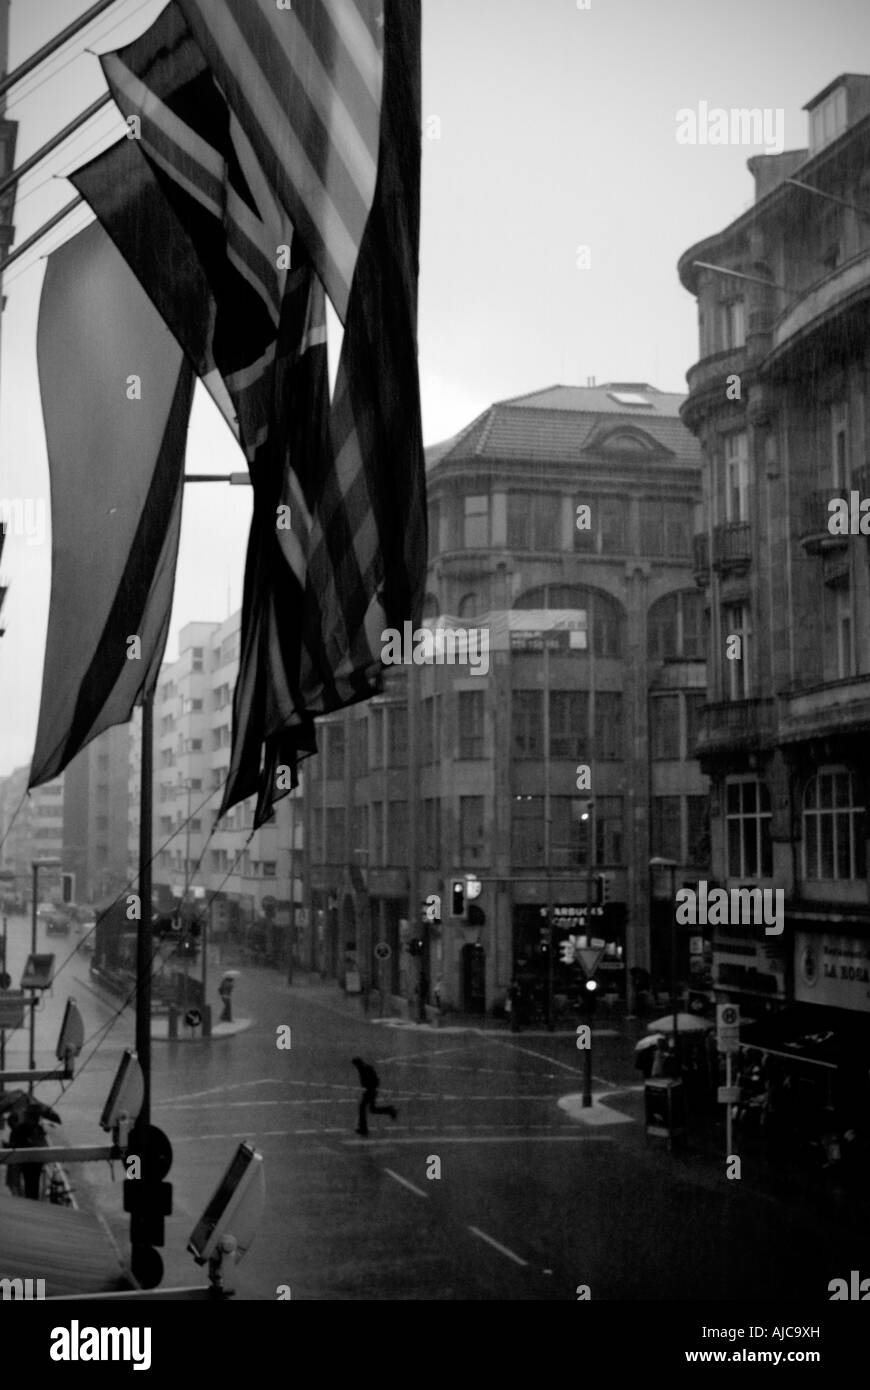 Germany, Berlin 2007, Flags. - Stock Image